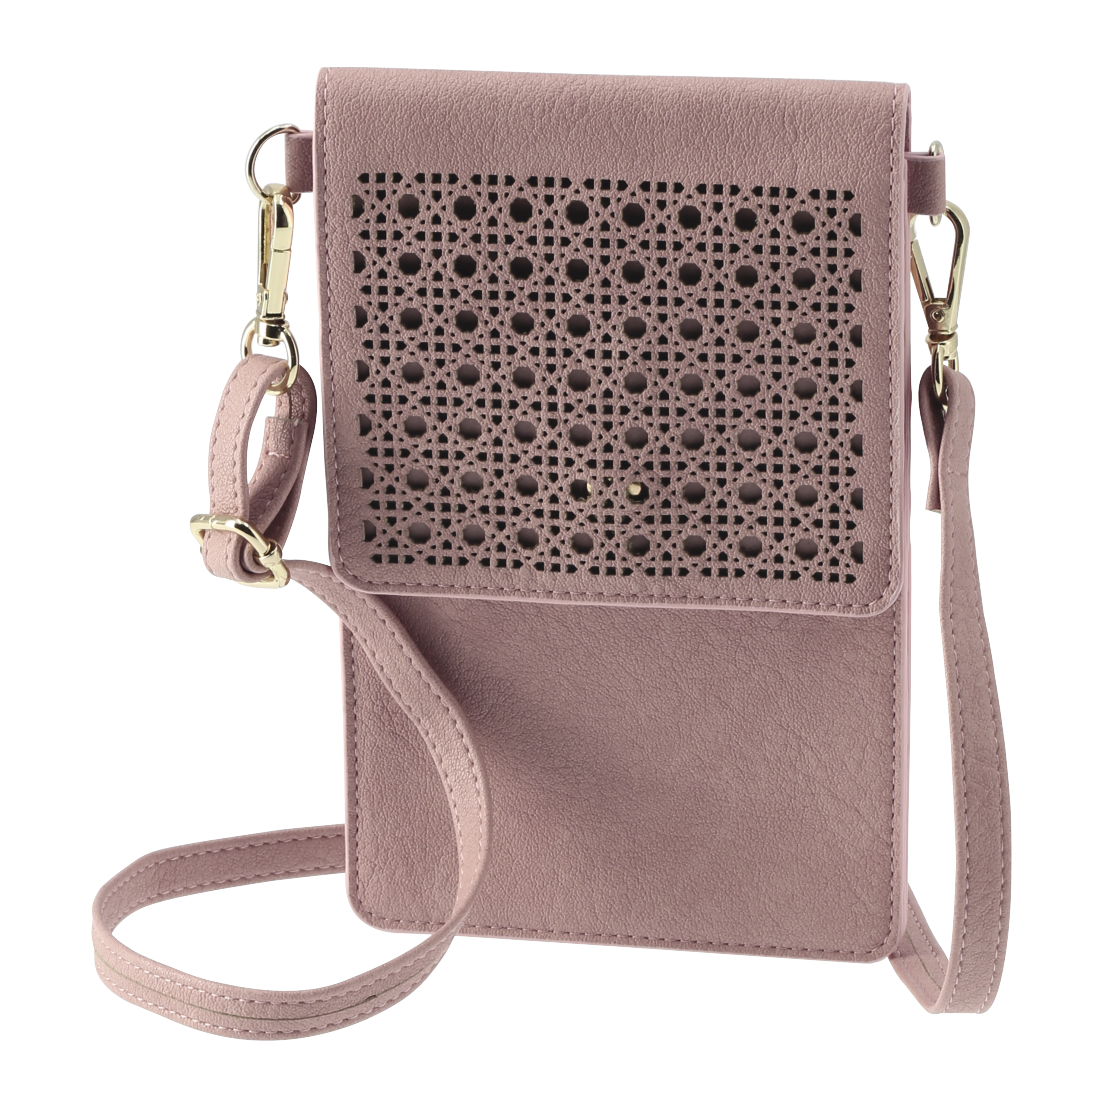 abx High-Res Image - Hama, Cross-Body Bag, Universal, for Smartphones, pink